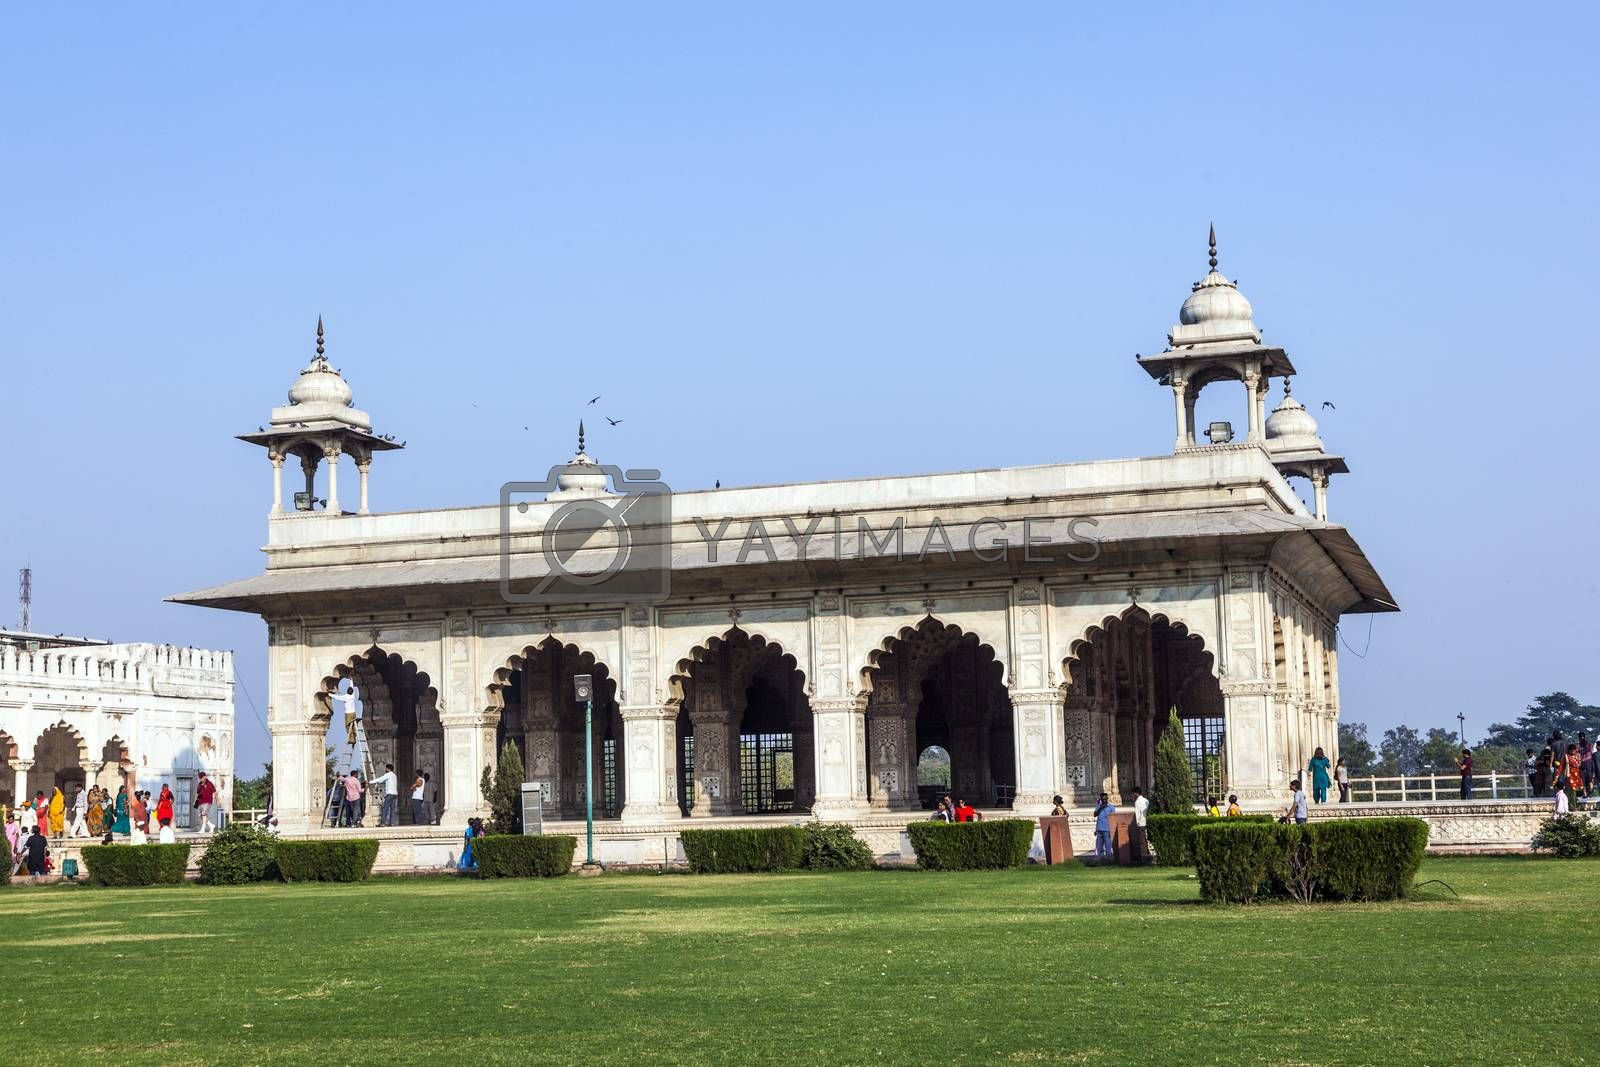 DELHI, INDIA - NOV 11, 2011: Local people spend their leisure time in the afternoon, before the Diwan-i-Khas, the white building in Red Fort, Delhi, India.